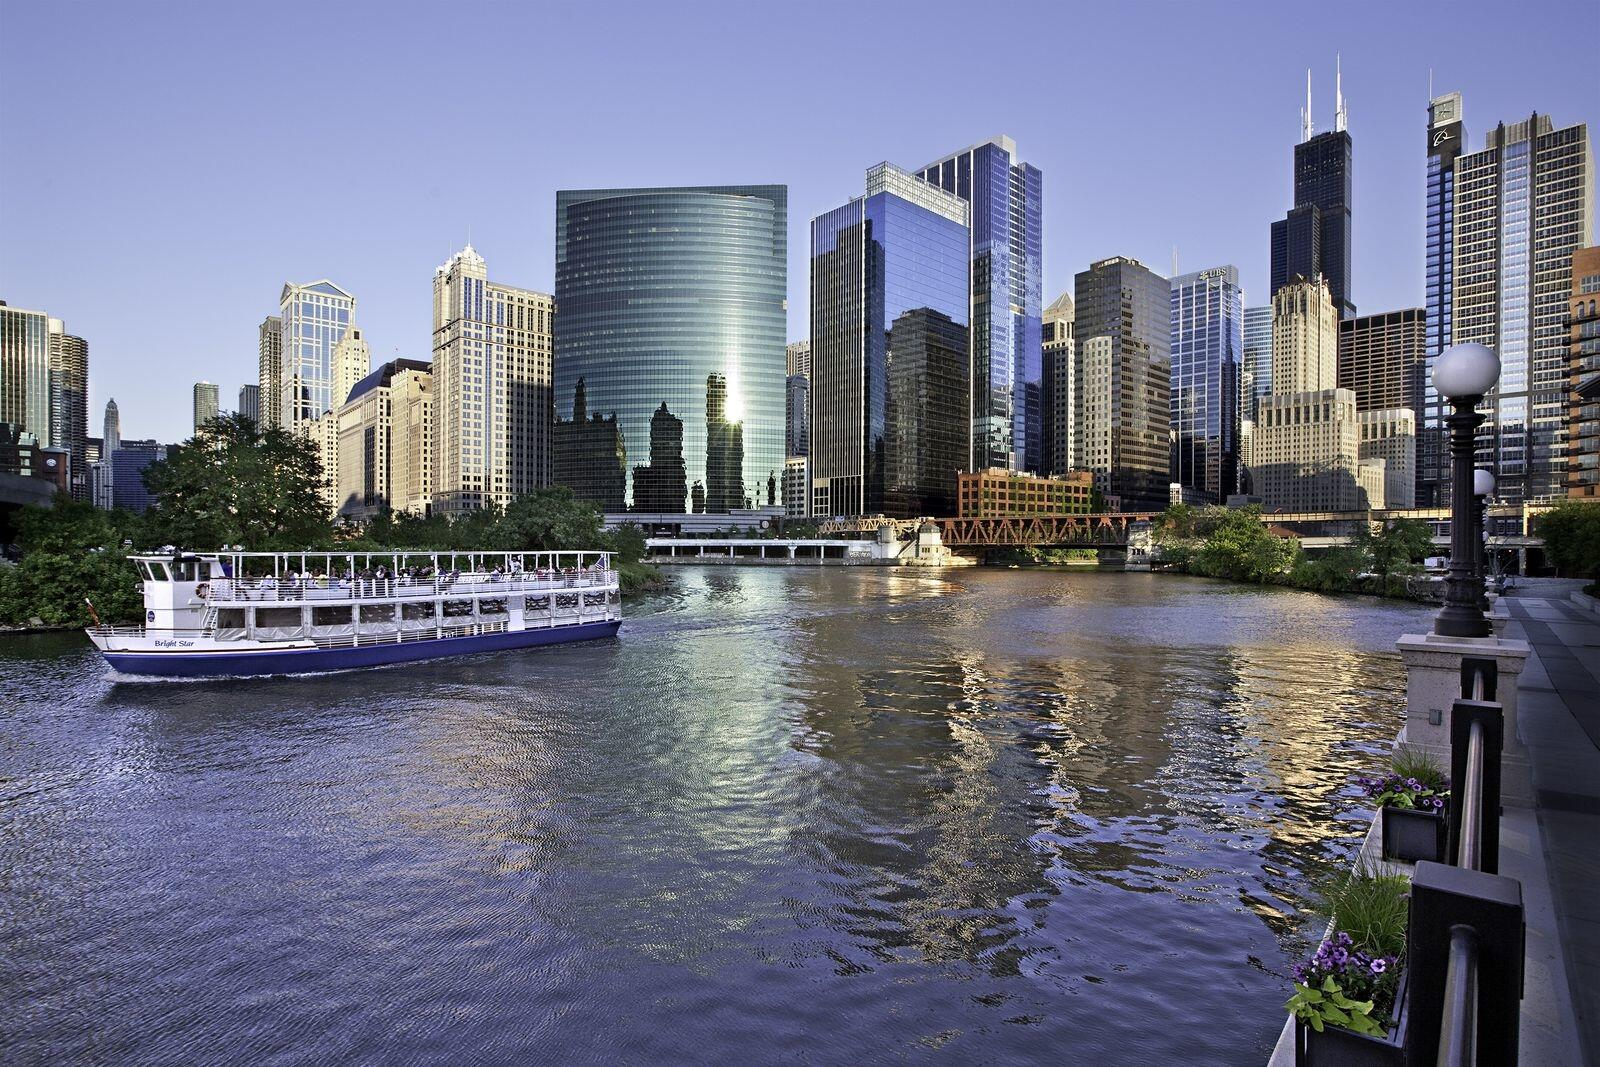 Kinzie Hotel Exterior and Chicago River